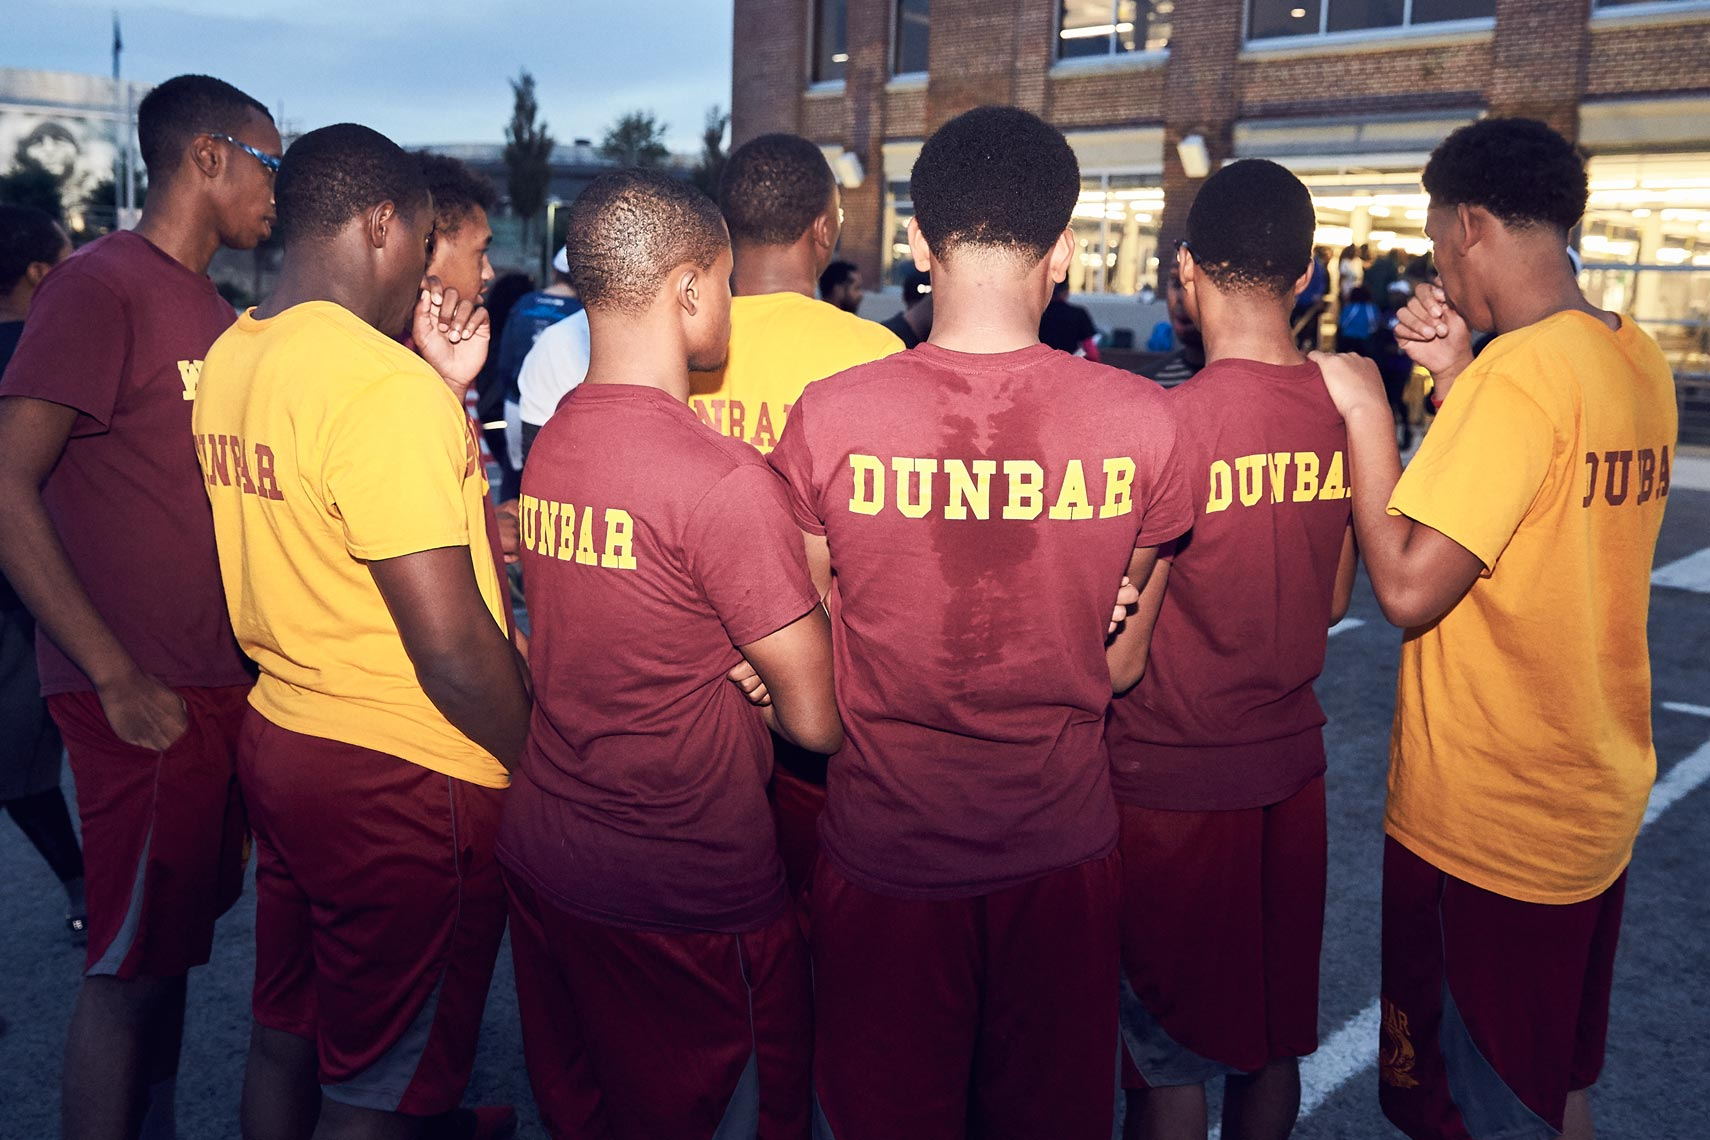 Dunbar High - Under Armour